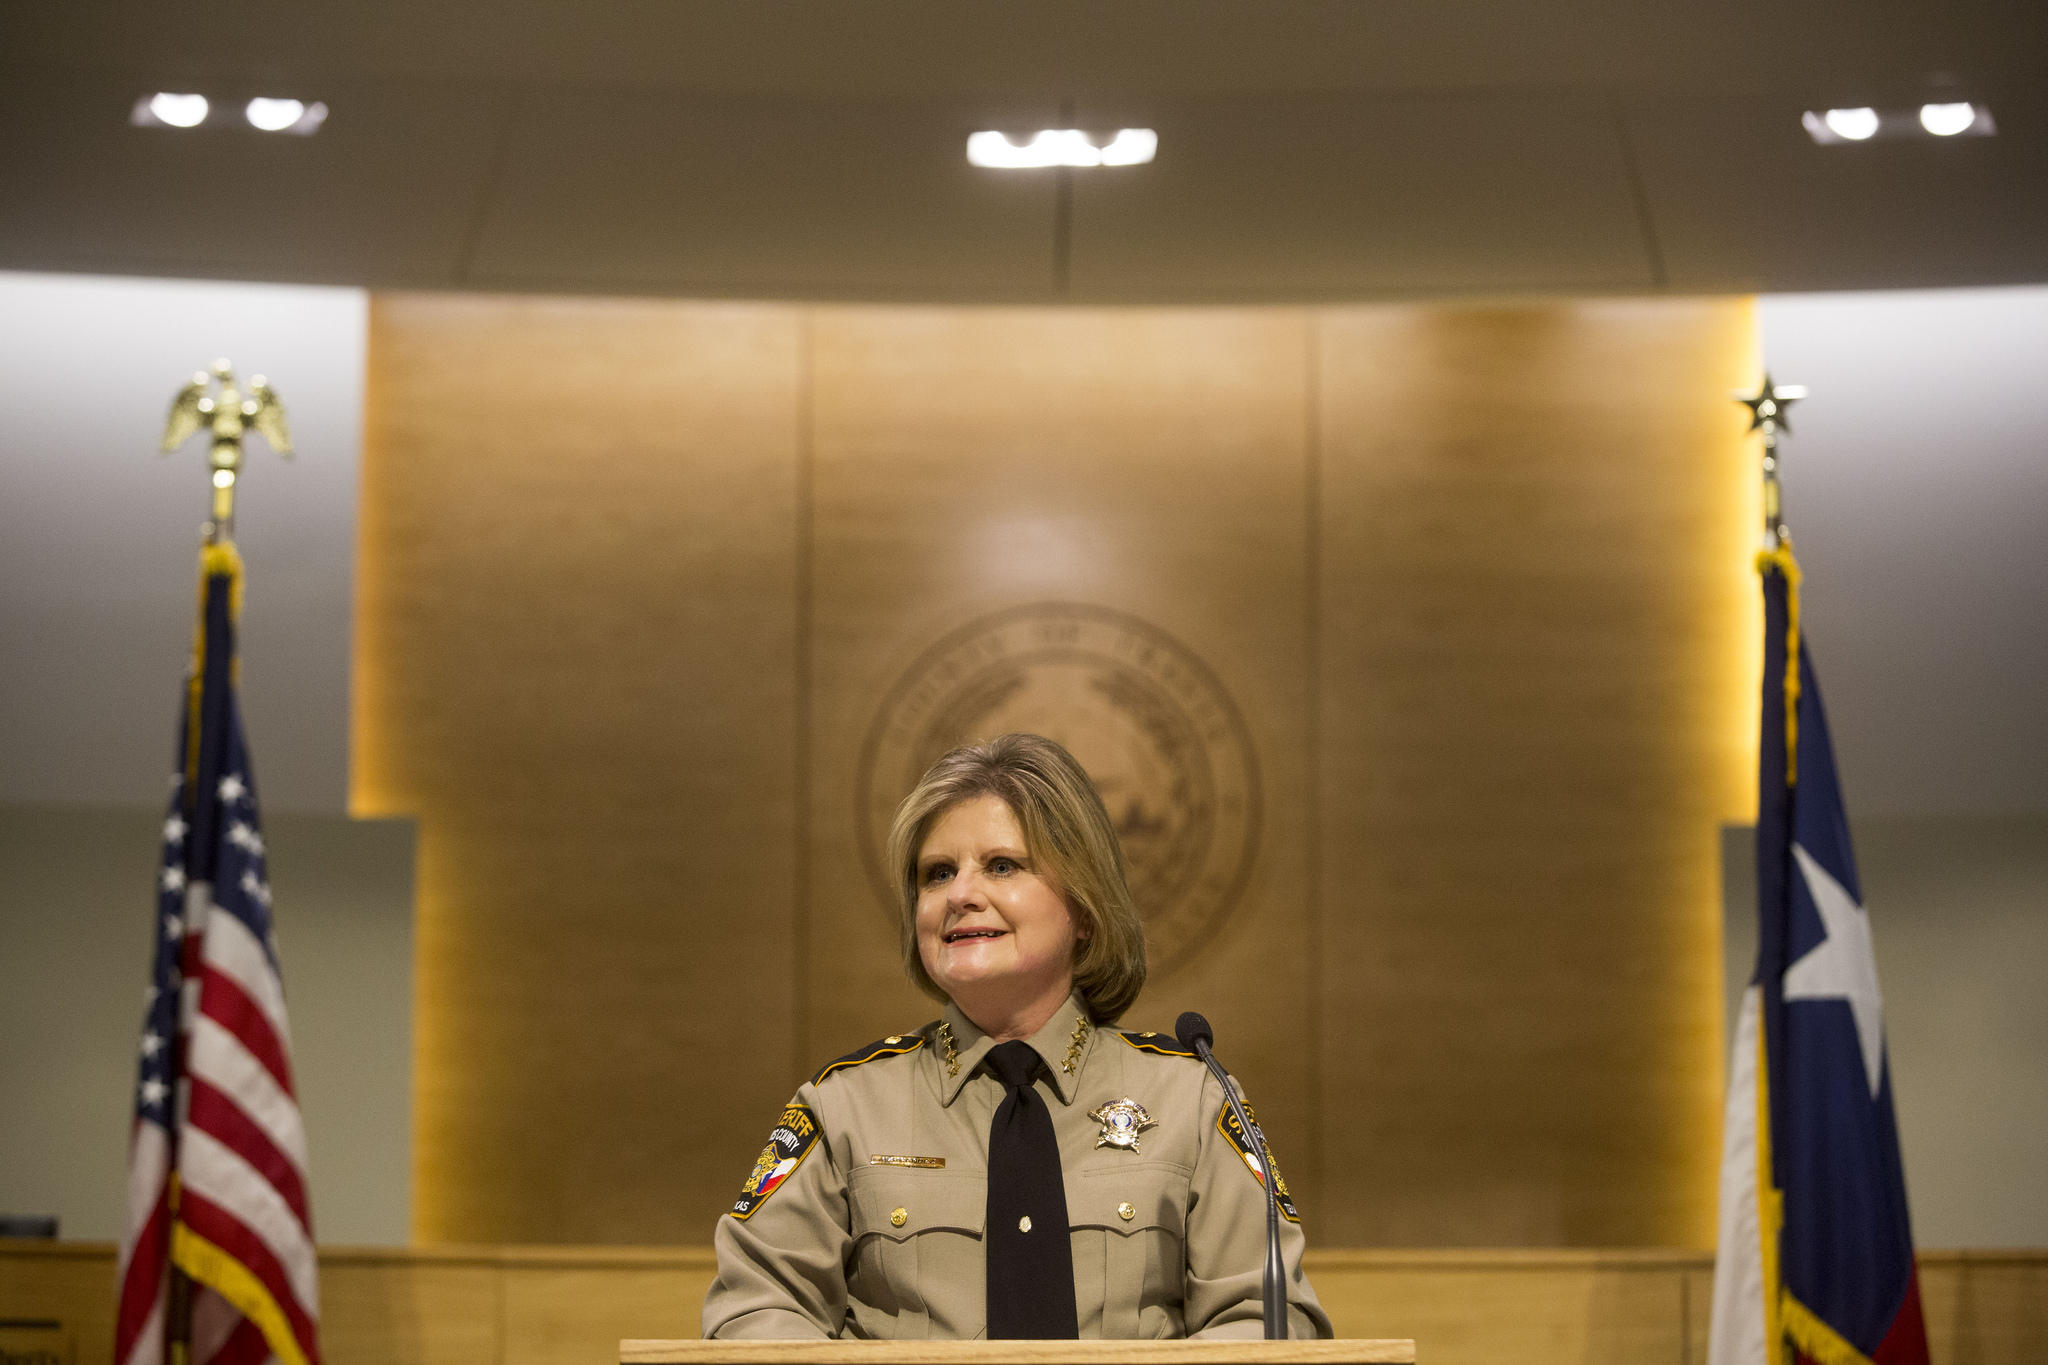 Travis County Sheriff's Office Releases New ICE Policies, Abbott Cuts Funding